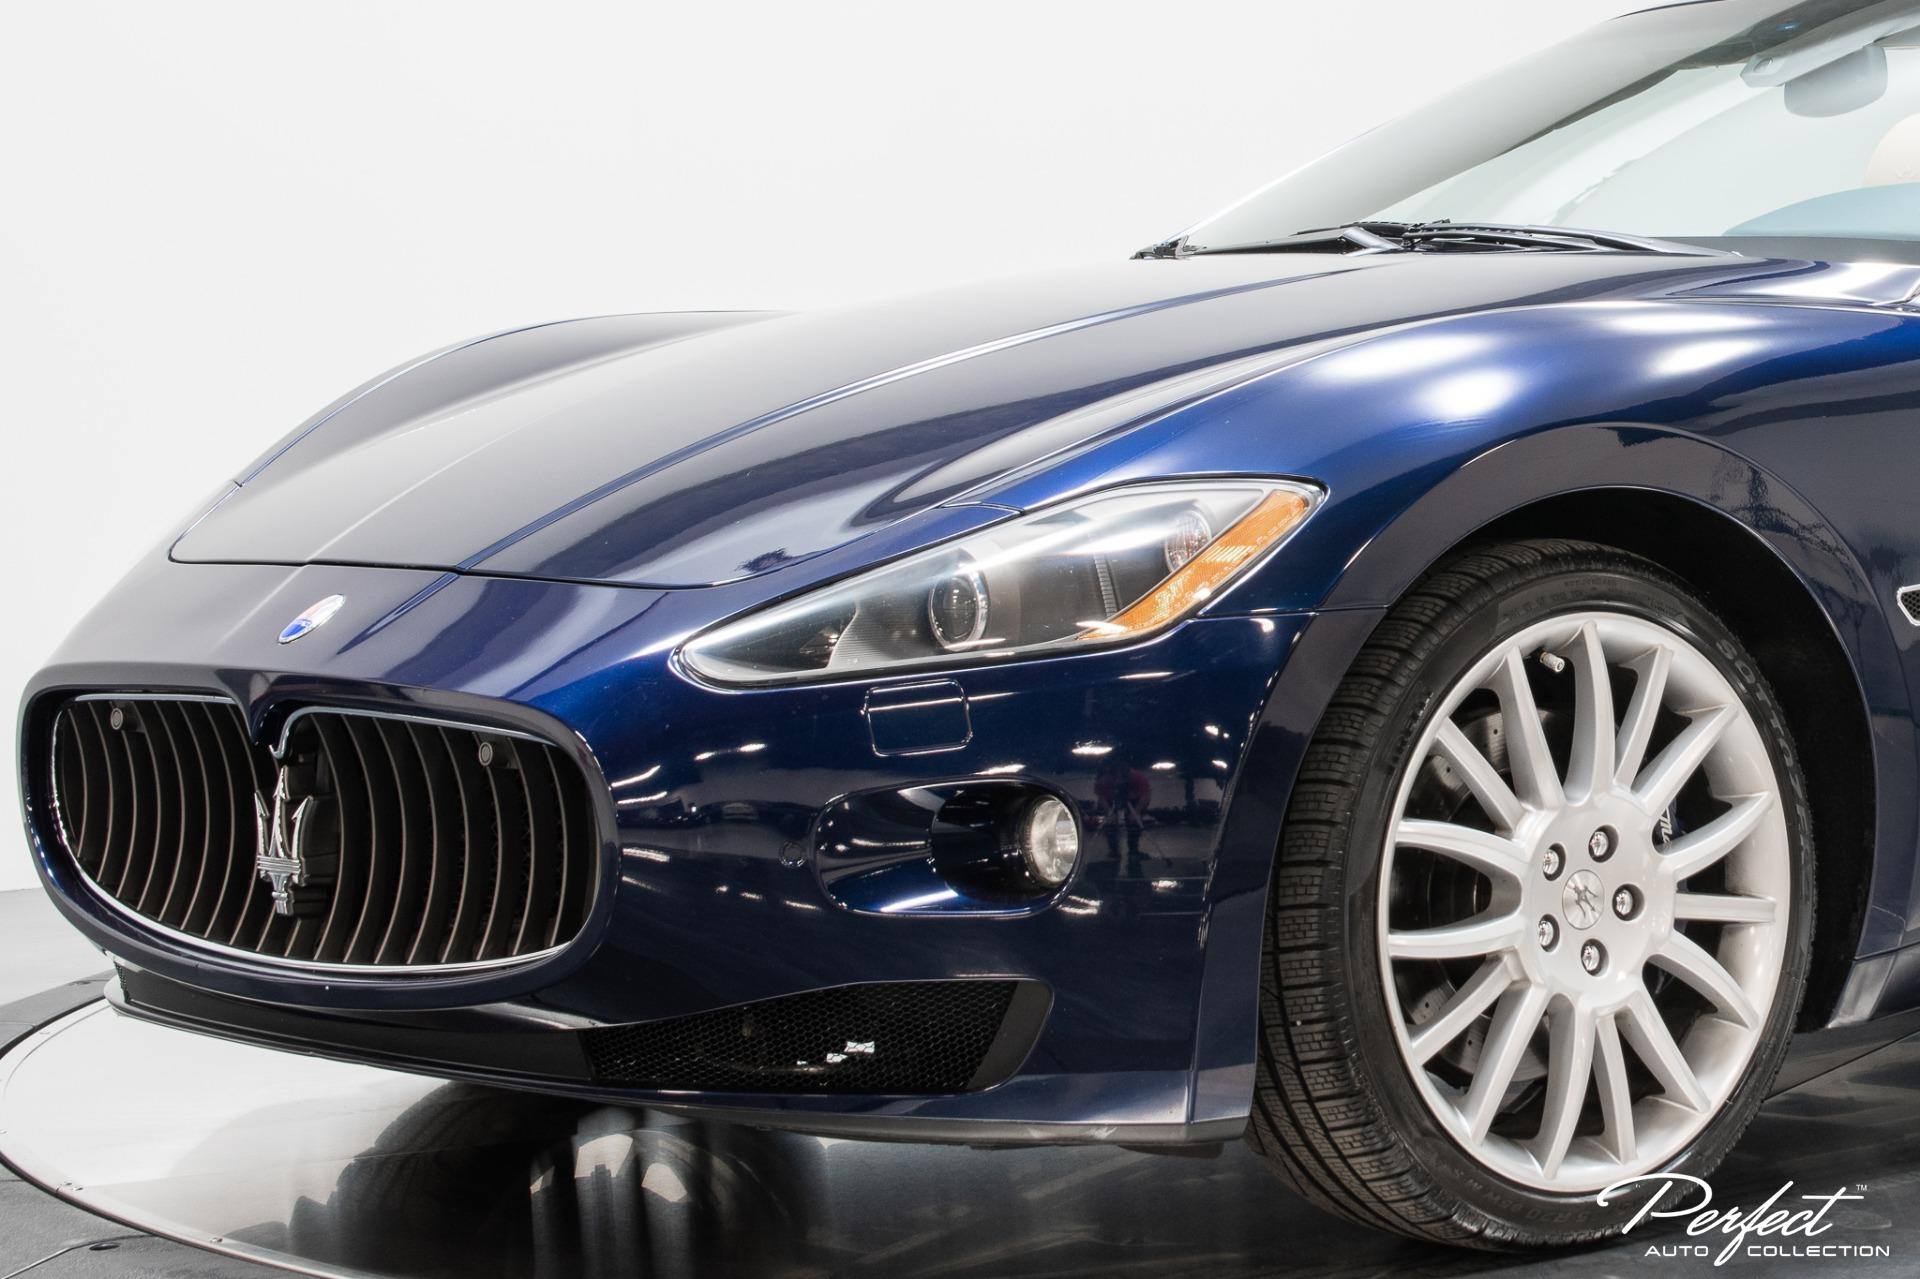 Used 2011 Maserati GranTurismo for sale Sold at Perfect Auto Collection in Akron OH 44310 4